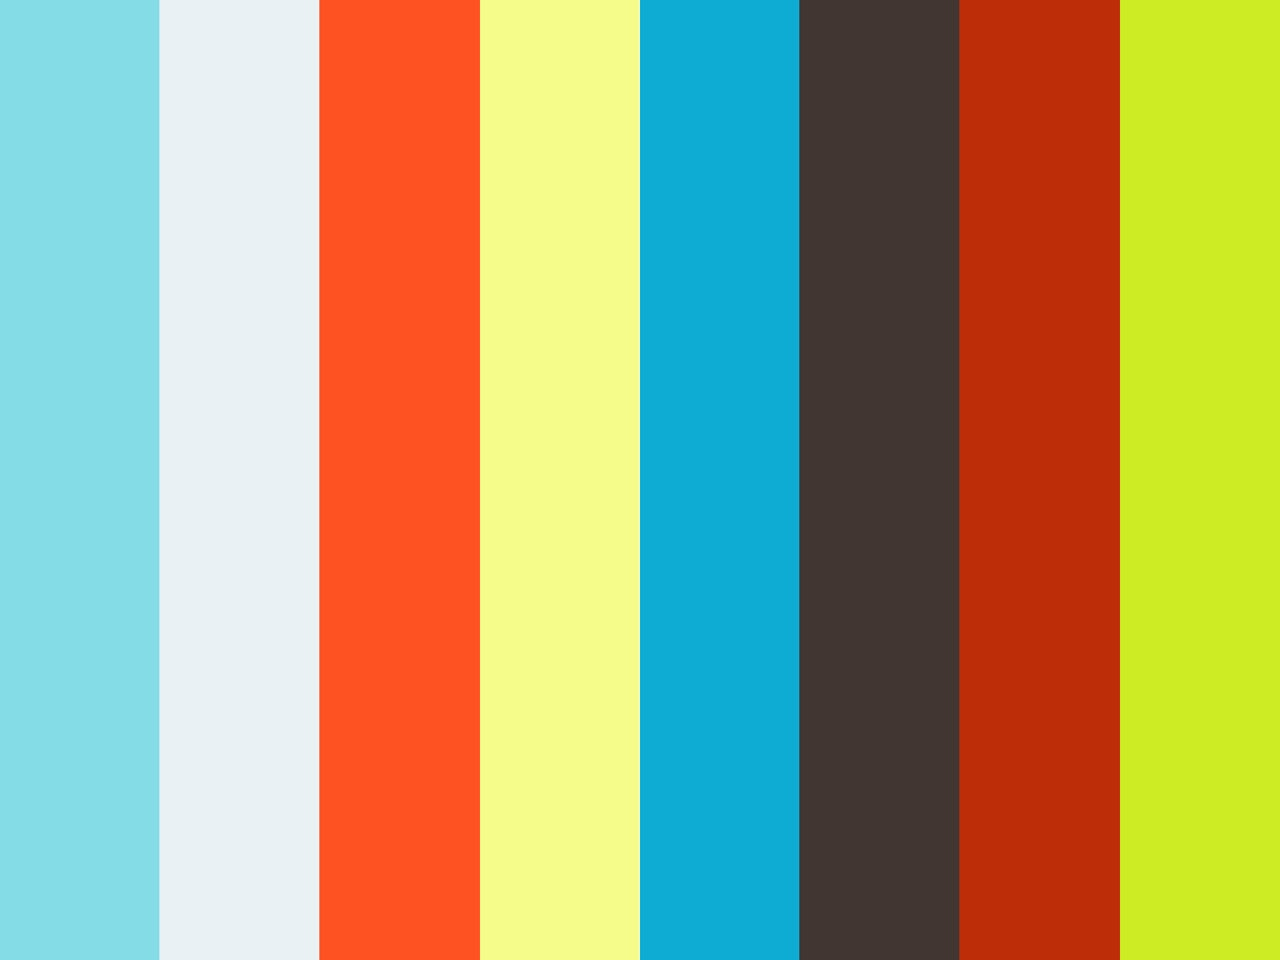 59823Authentic Leadership